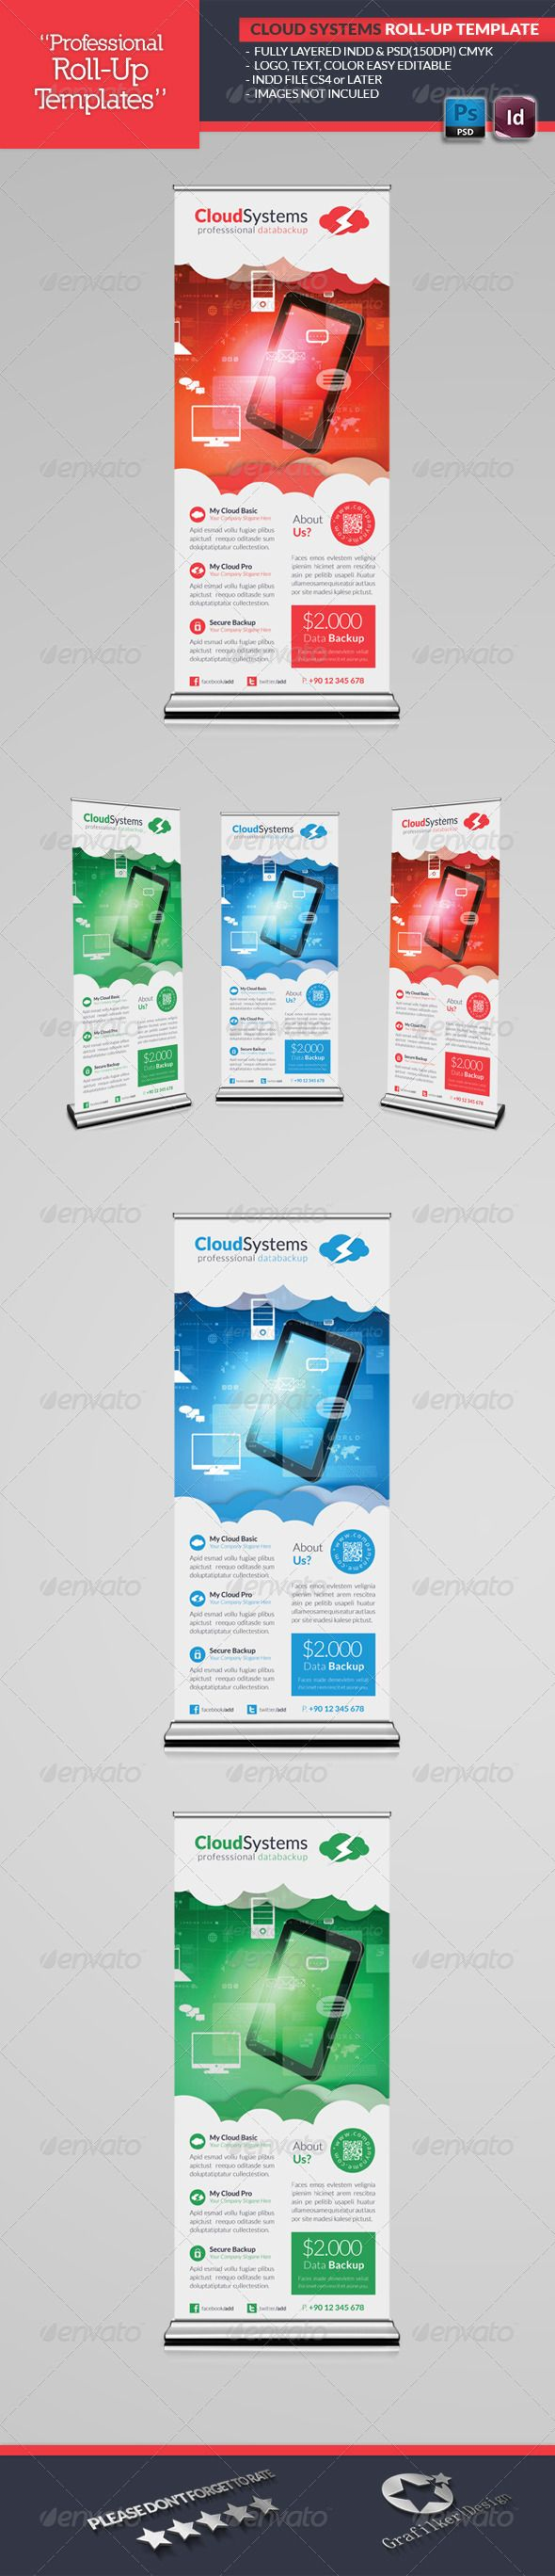 Cloud Systems RollUp Template — Photoshop PSD #monitoring #hosting • Availab...